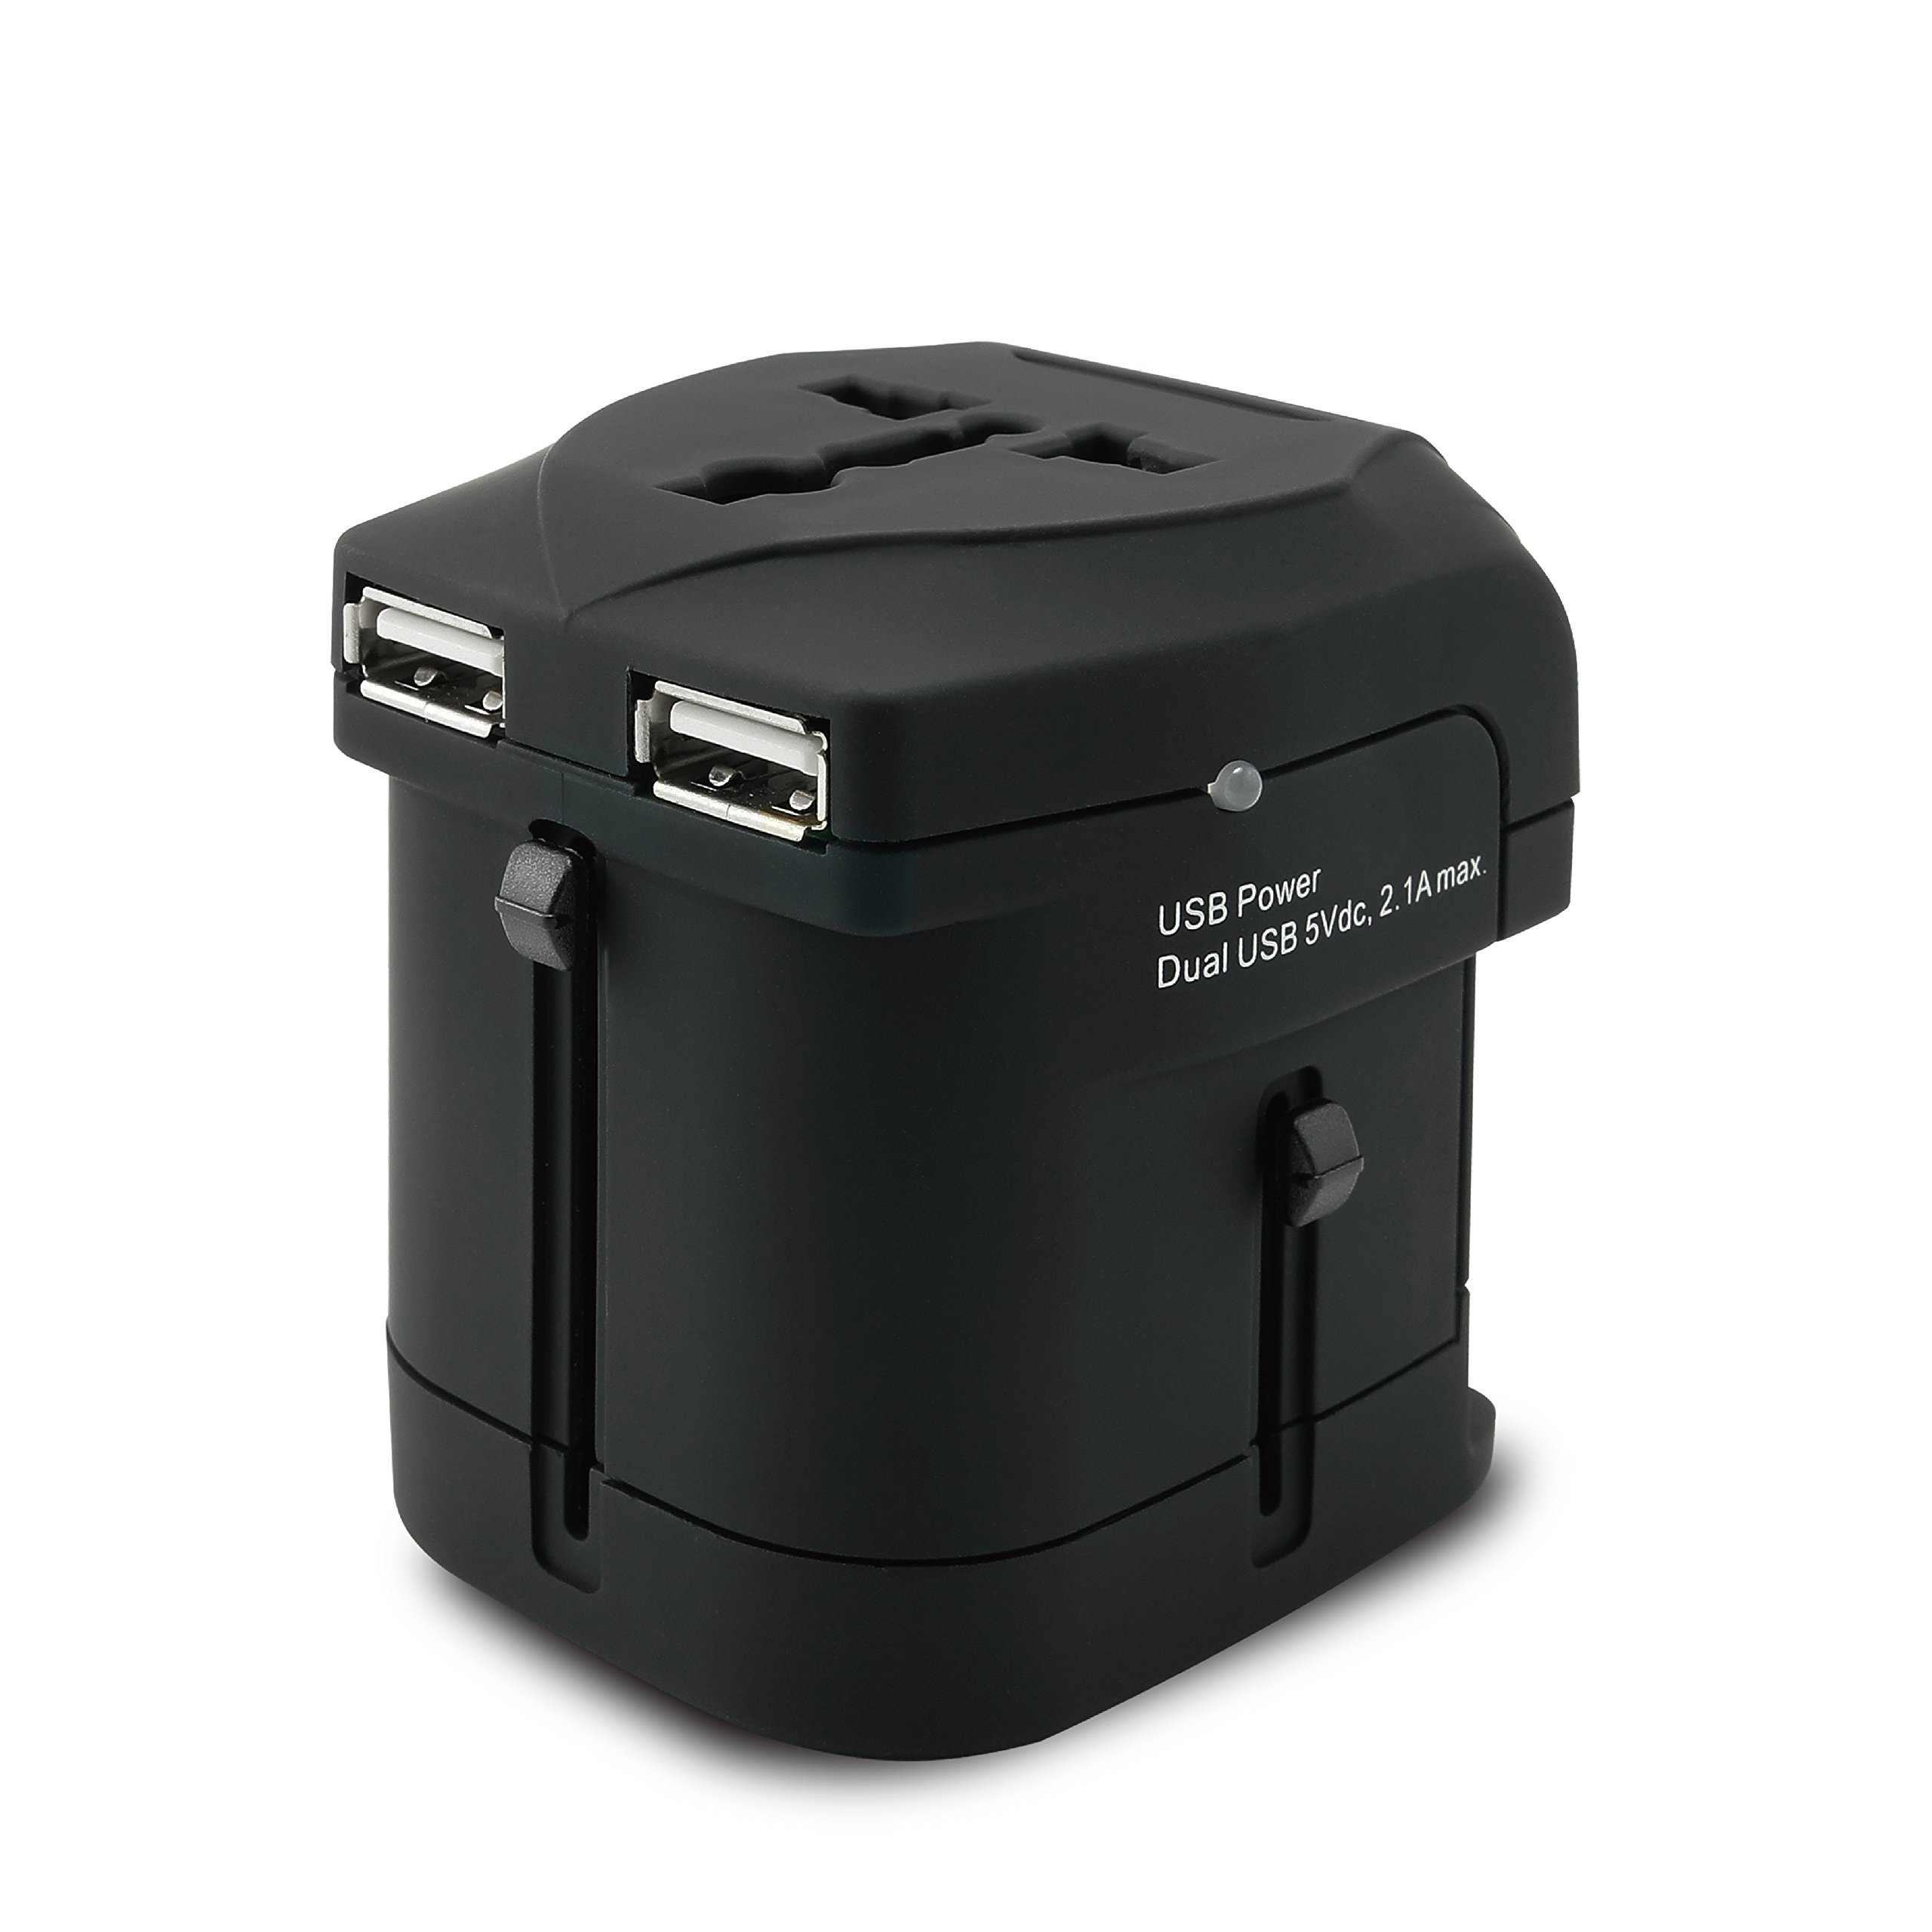 MOBIMANN Universal World Travel Adapter with 2 USB Ports UK, US, AU, Europe Plug Adapter Over 150 Countries USB Power Adapter for iPhone, Android, All USB Devices